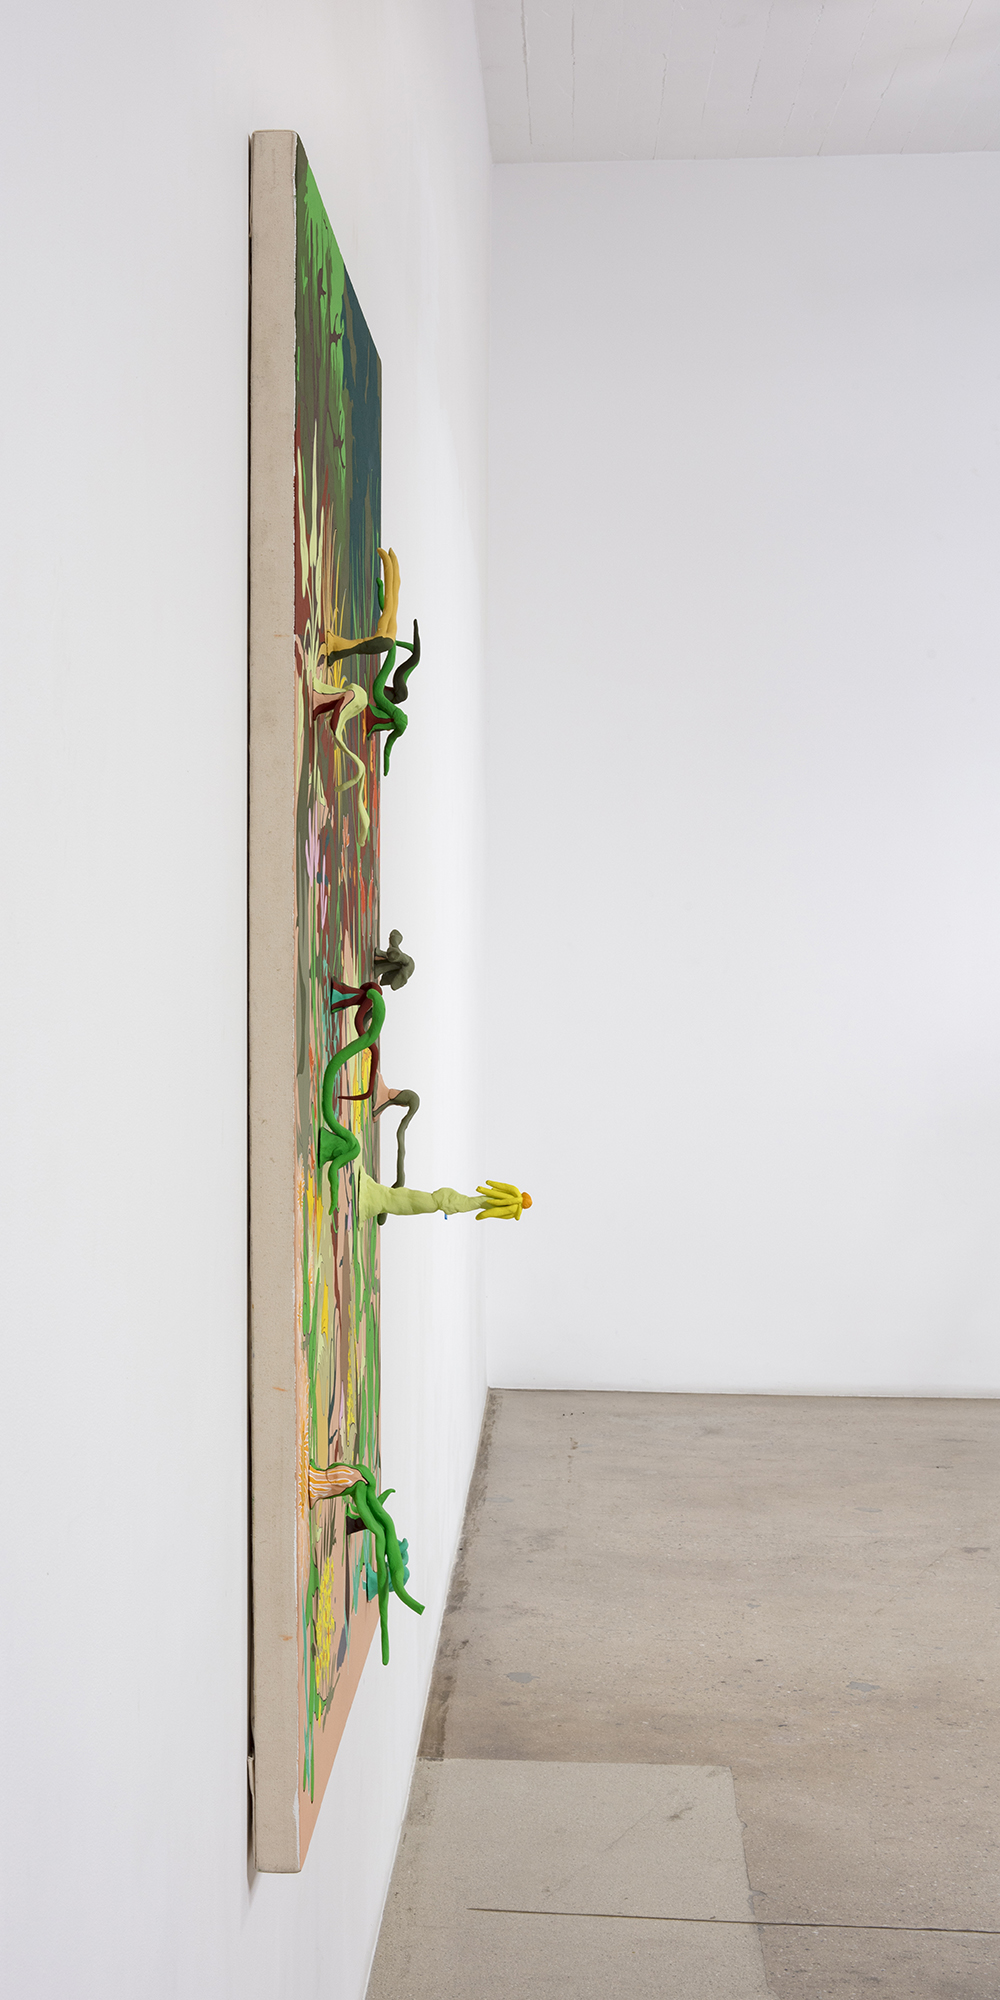 Chris Lux. <em>The Garden</em>, 2019. Flashe and epoxy resin on canvas on panel, 68 x 47 inches (172.7 x 119.4 cm)